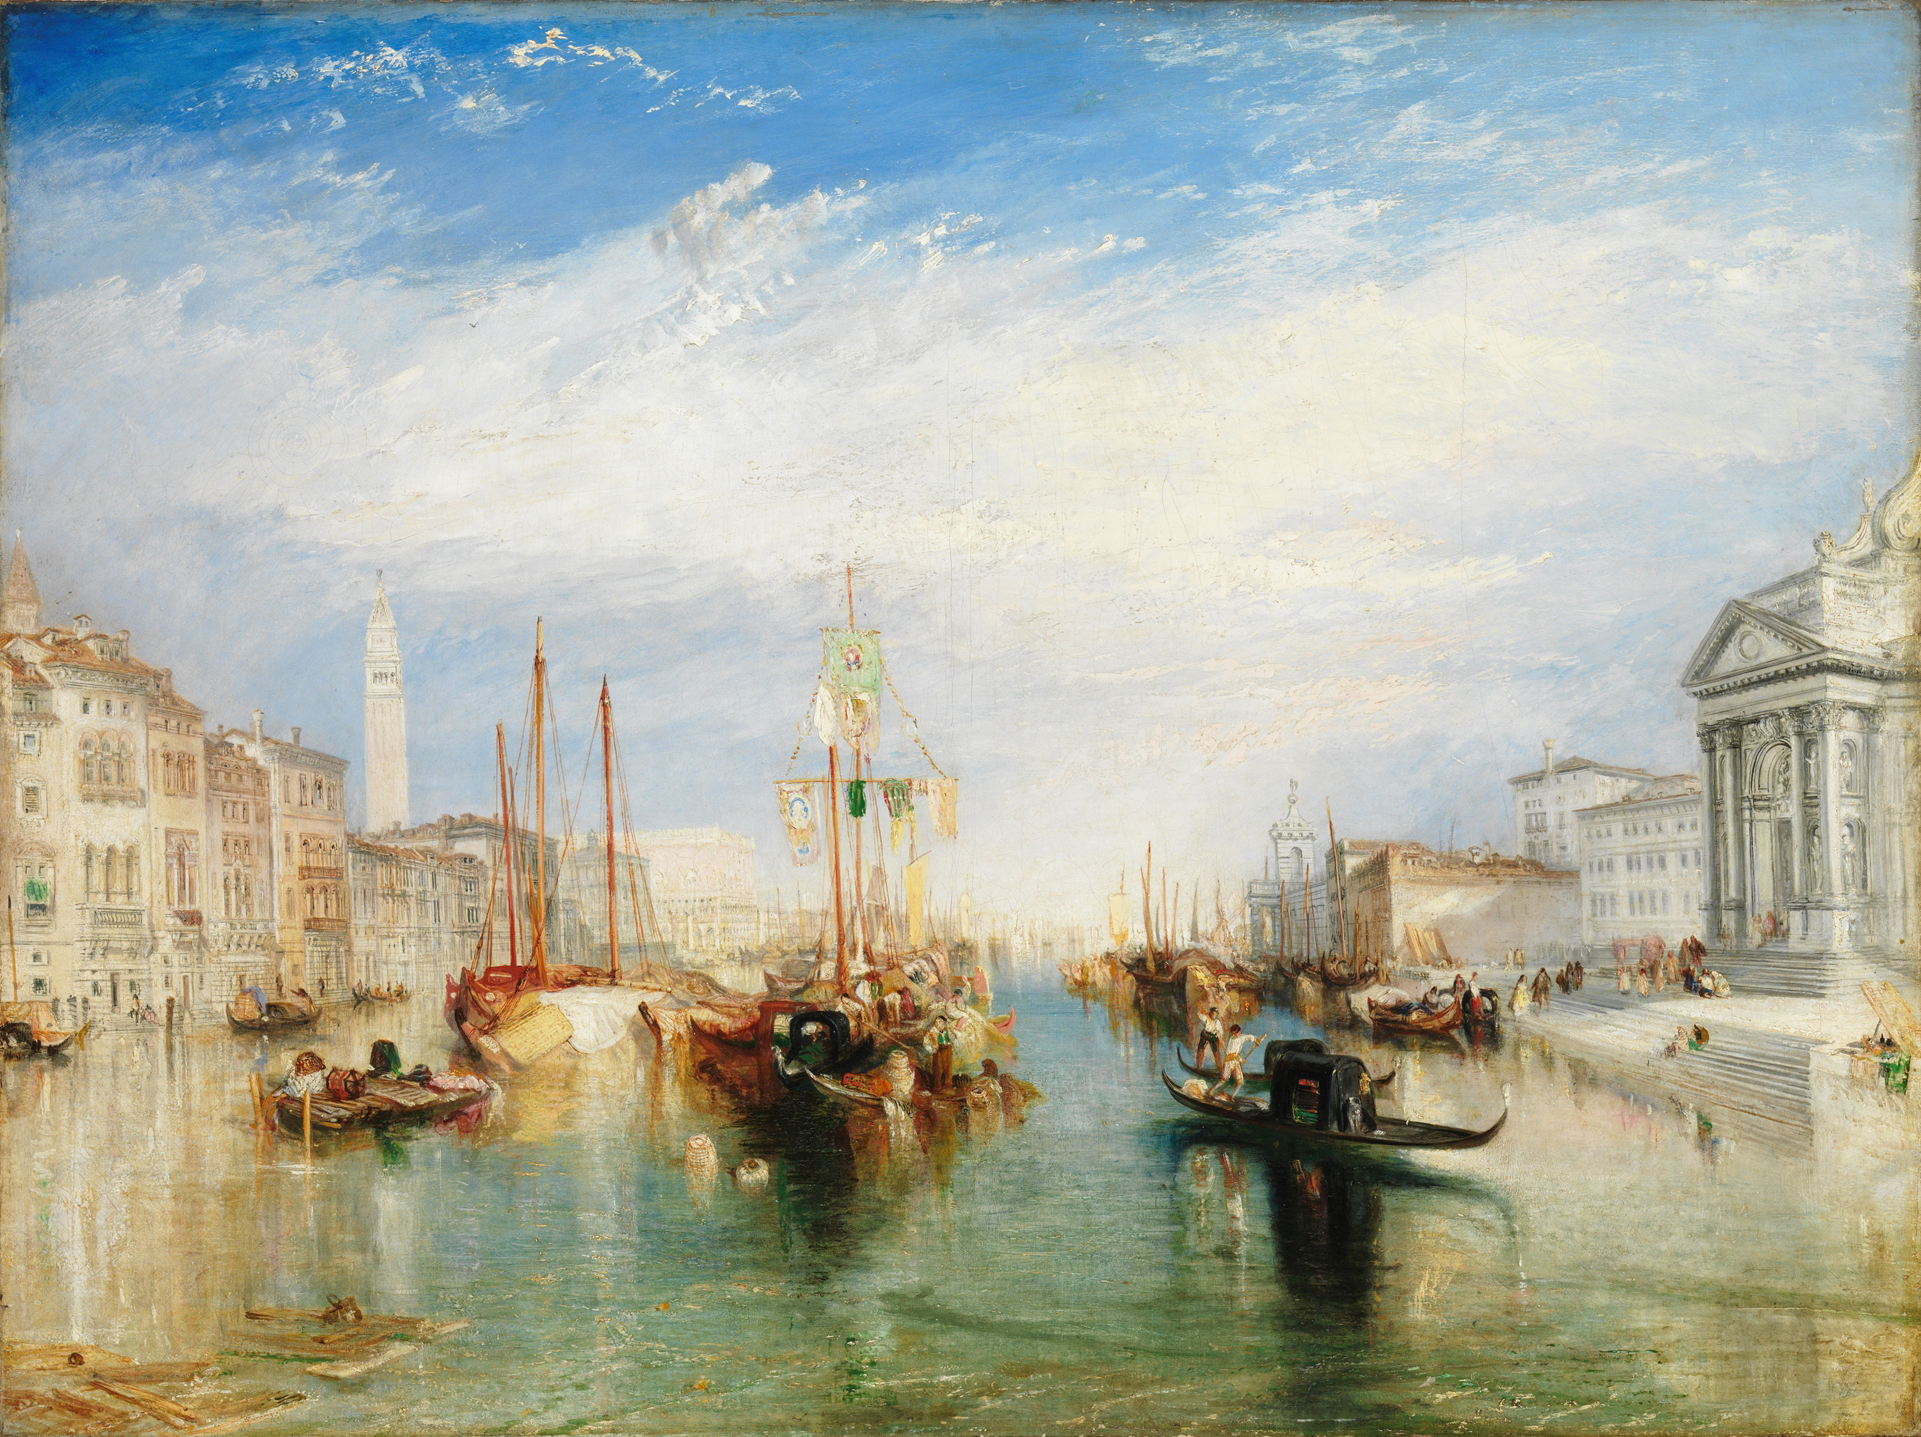 William Turner - The Grand Canal, Venice, 1840